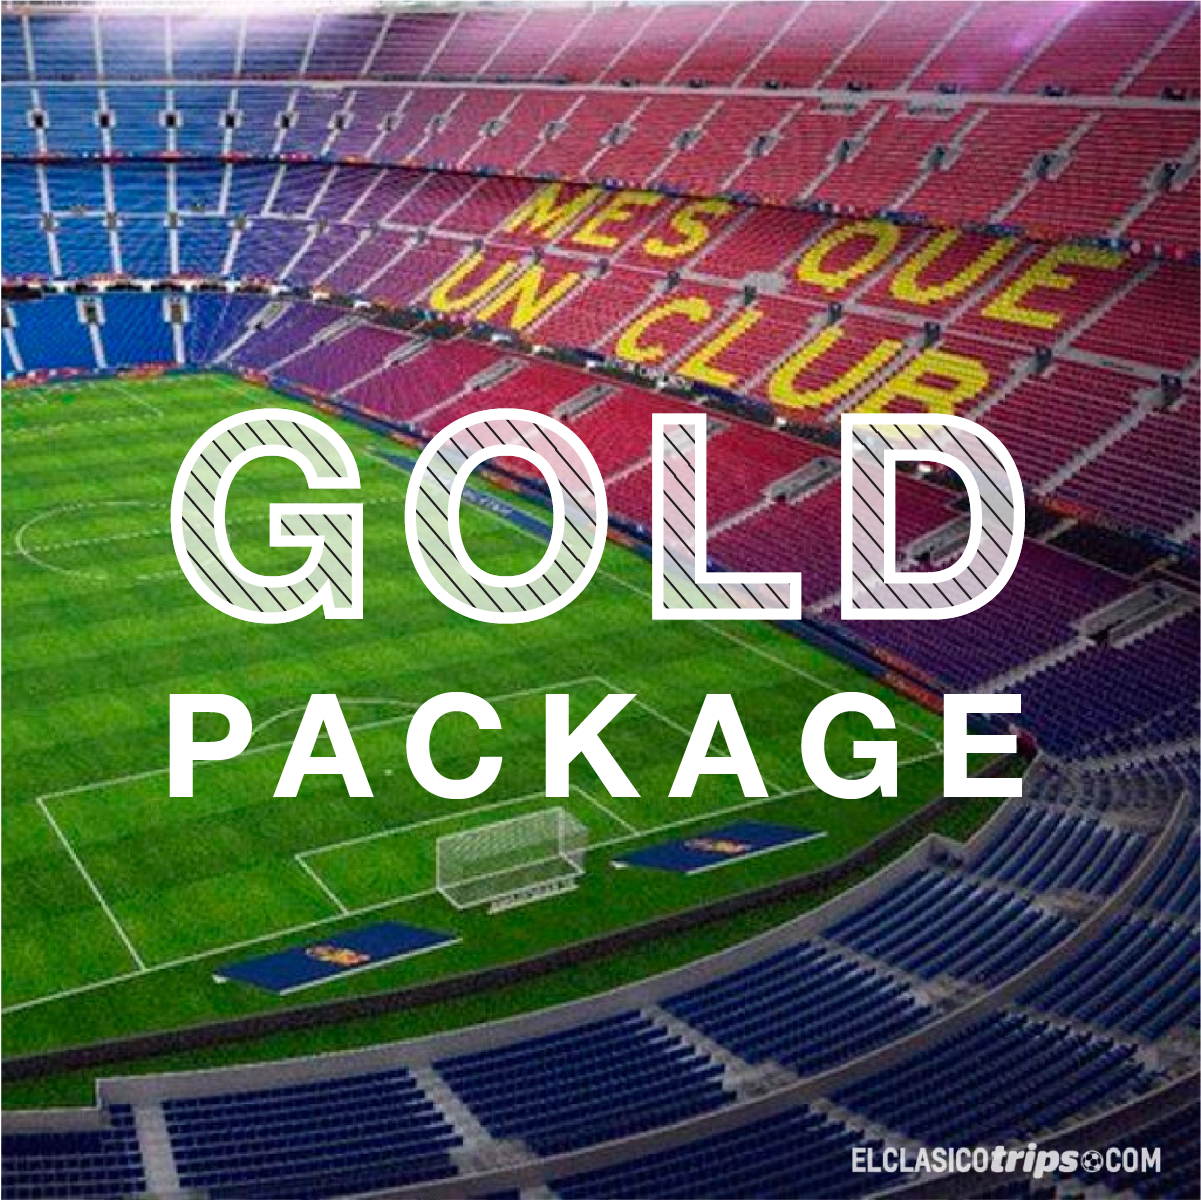 El Clasico - FC Barcelona vs Real Madrid - Gold Package